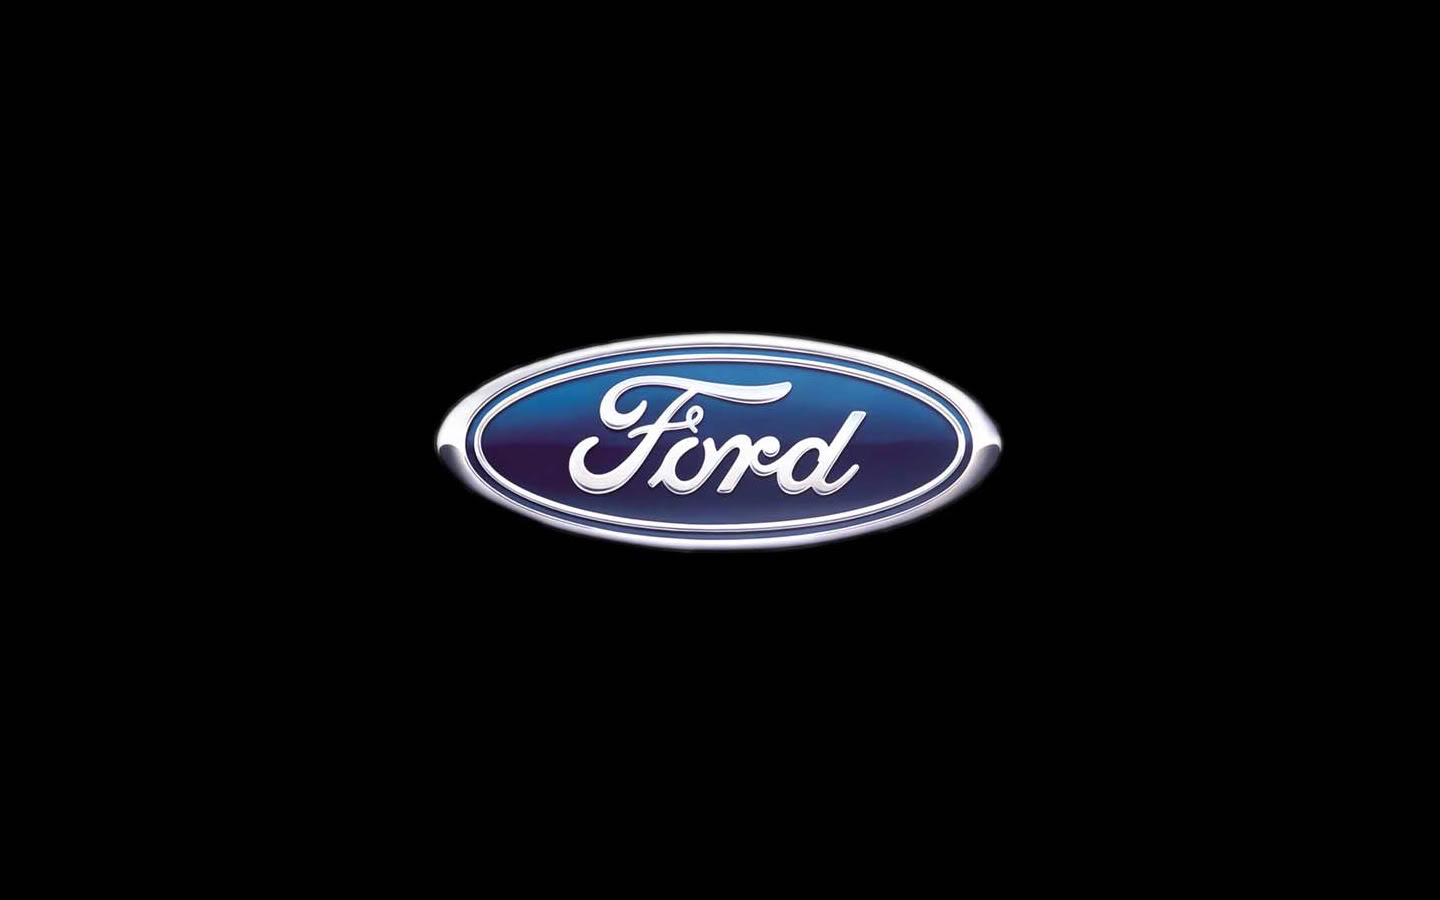 Ford Logo Background   Ford Logo Wallpaper for Desktop 1440x900